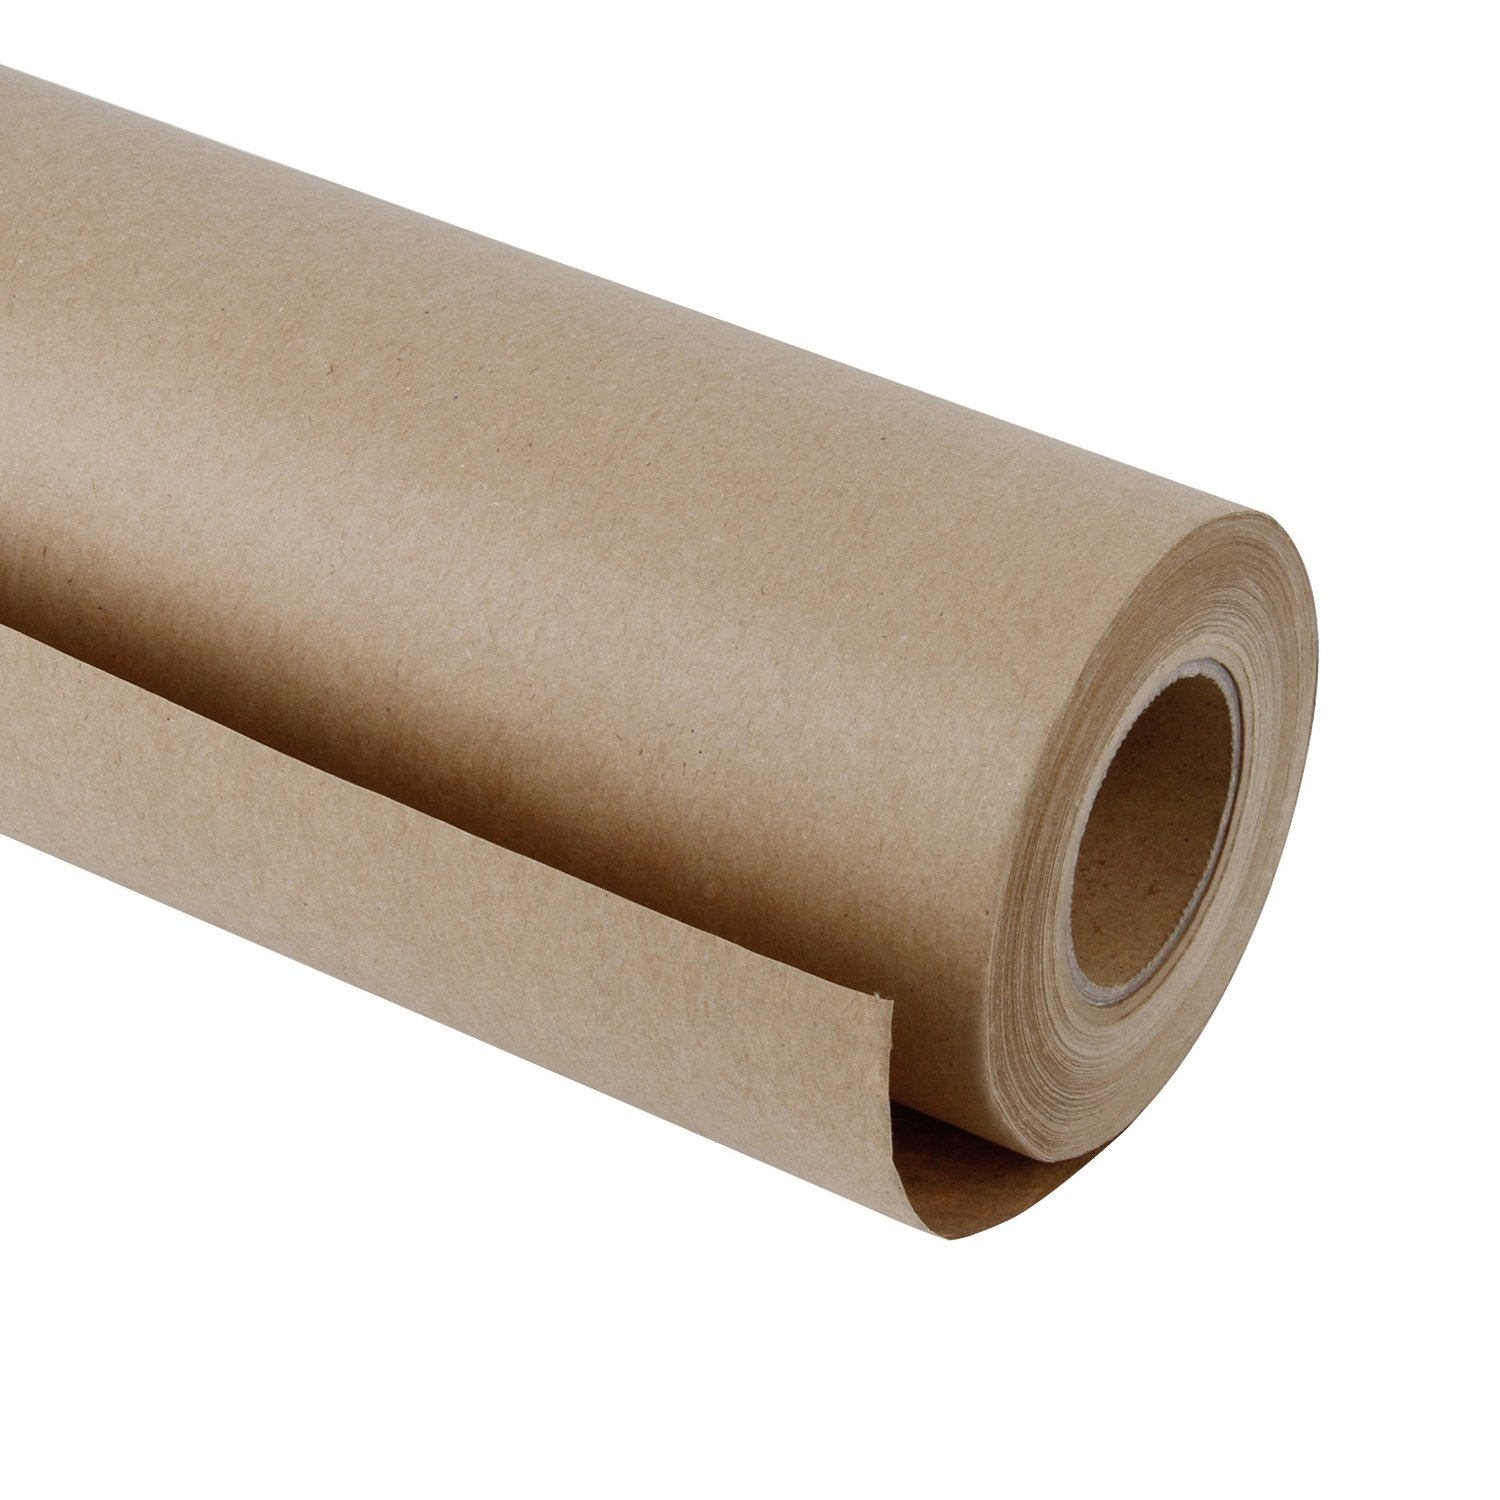 RUSPEPA Brown Kraft Paper Roll - 8 inch x 100 Feet - Natural Recycled Paper Perfect for for Crafts, Art, Gift Wrapping, Packing, Postal, Shipping, Dunnage & Parcel 4336879567